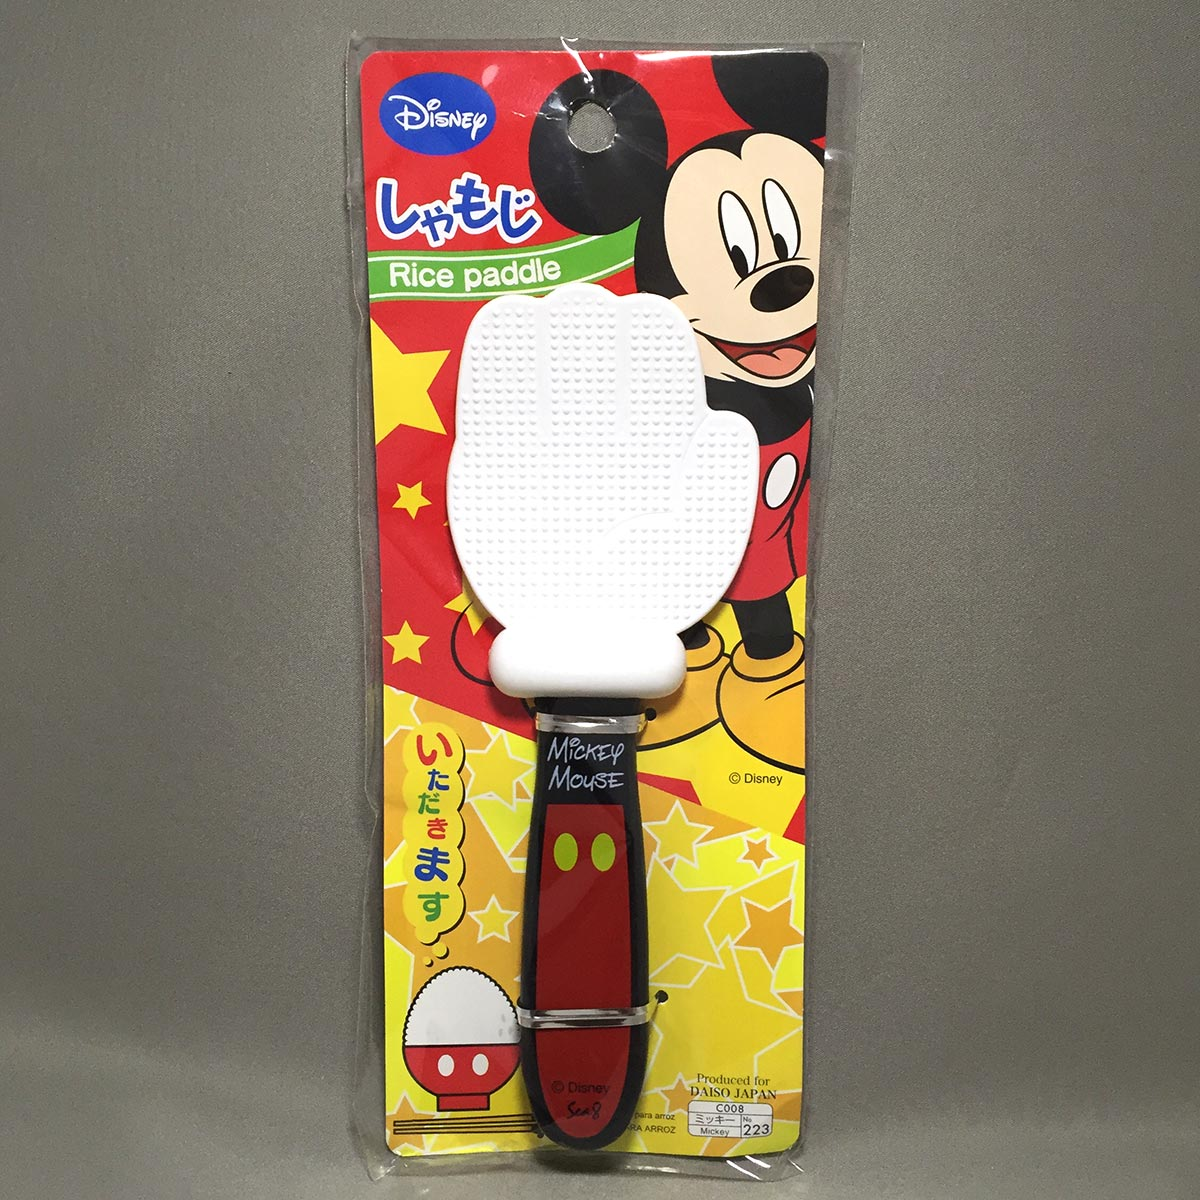 Disney Mickey Mouse Rice Paddle - front packaging